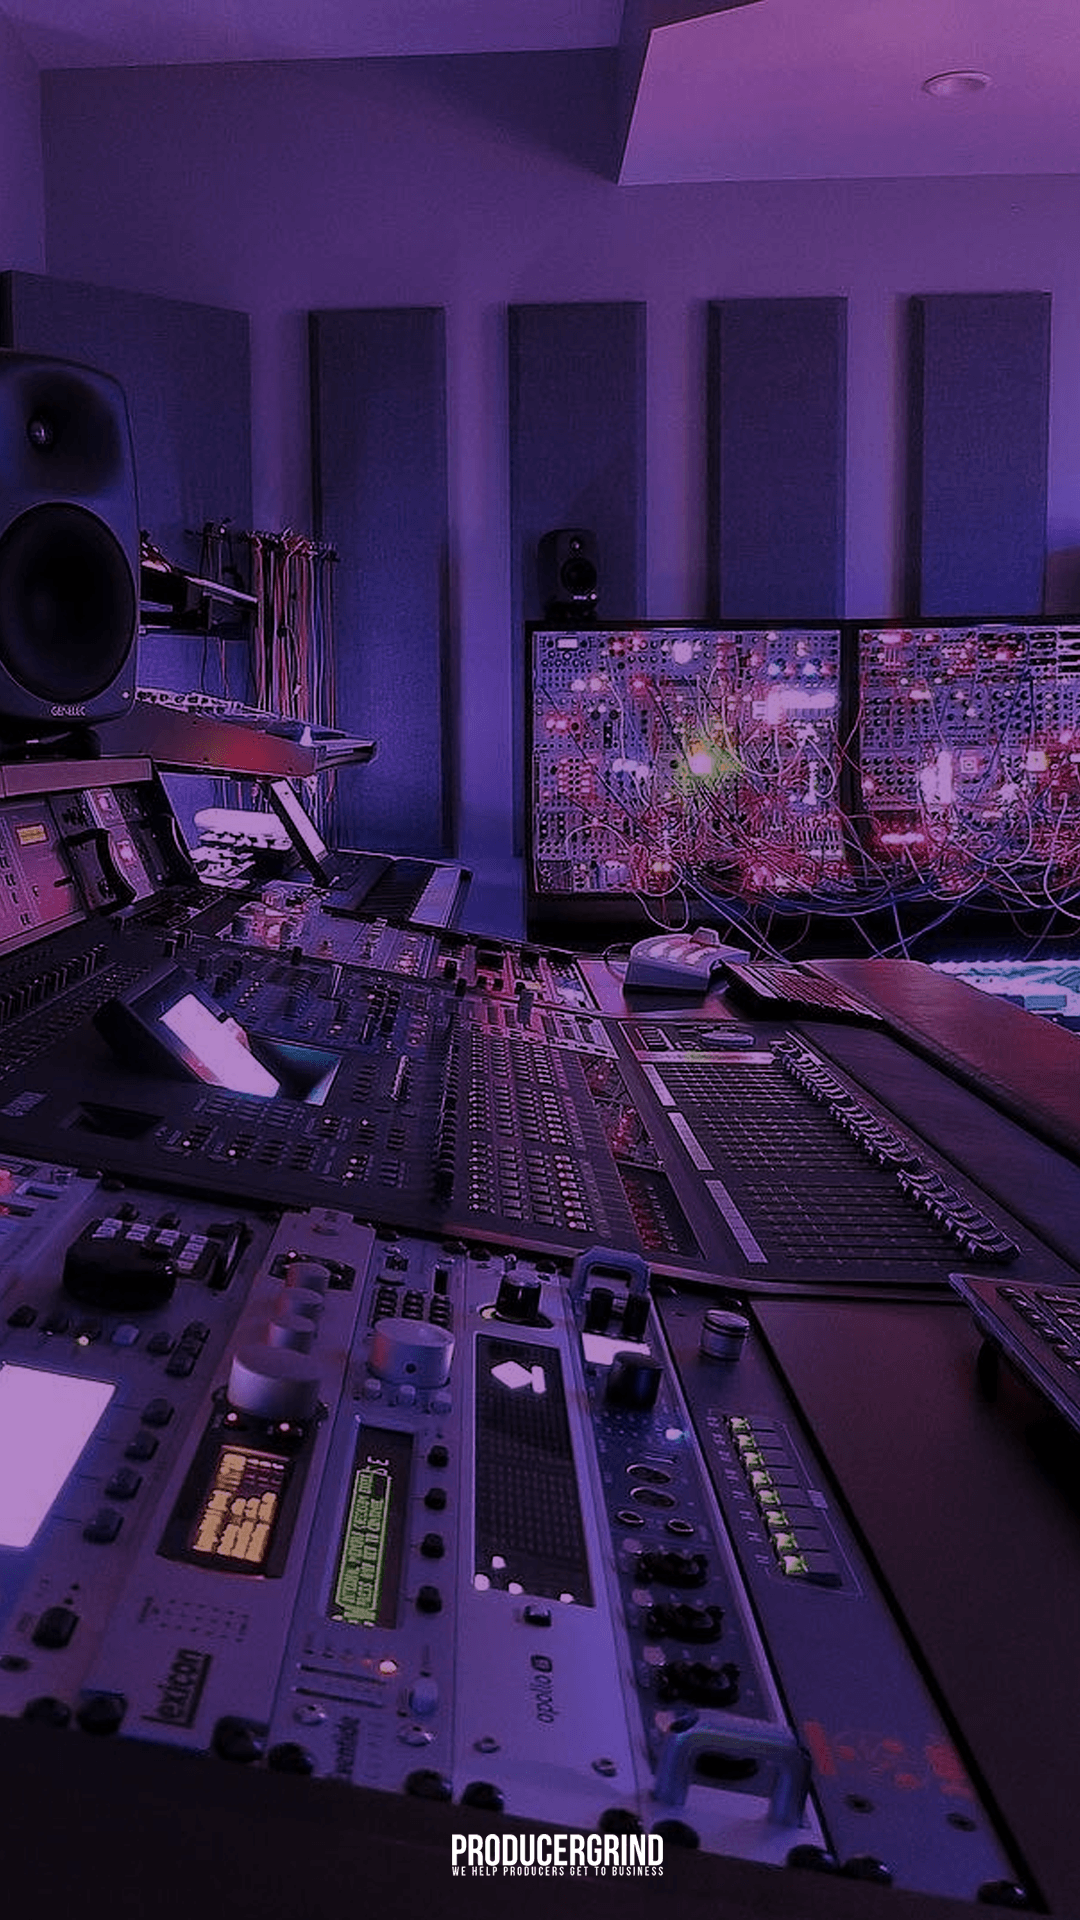 1080x1920 7 More iPhone Wallpapers For Producers (MPC, 808 Mafia, Discipline ...